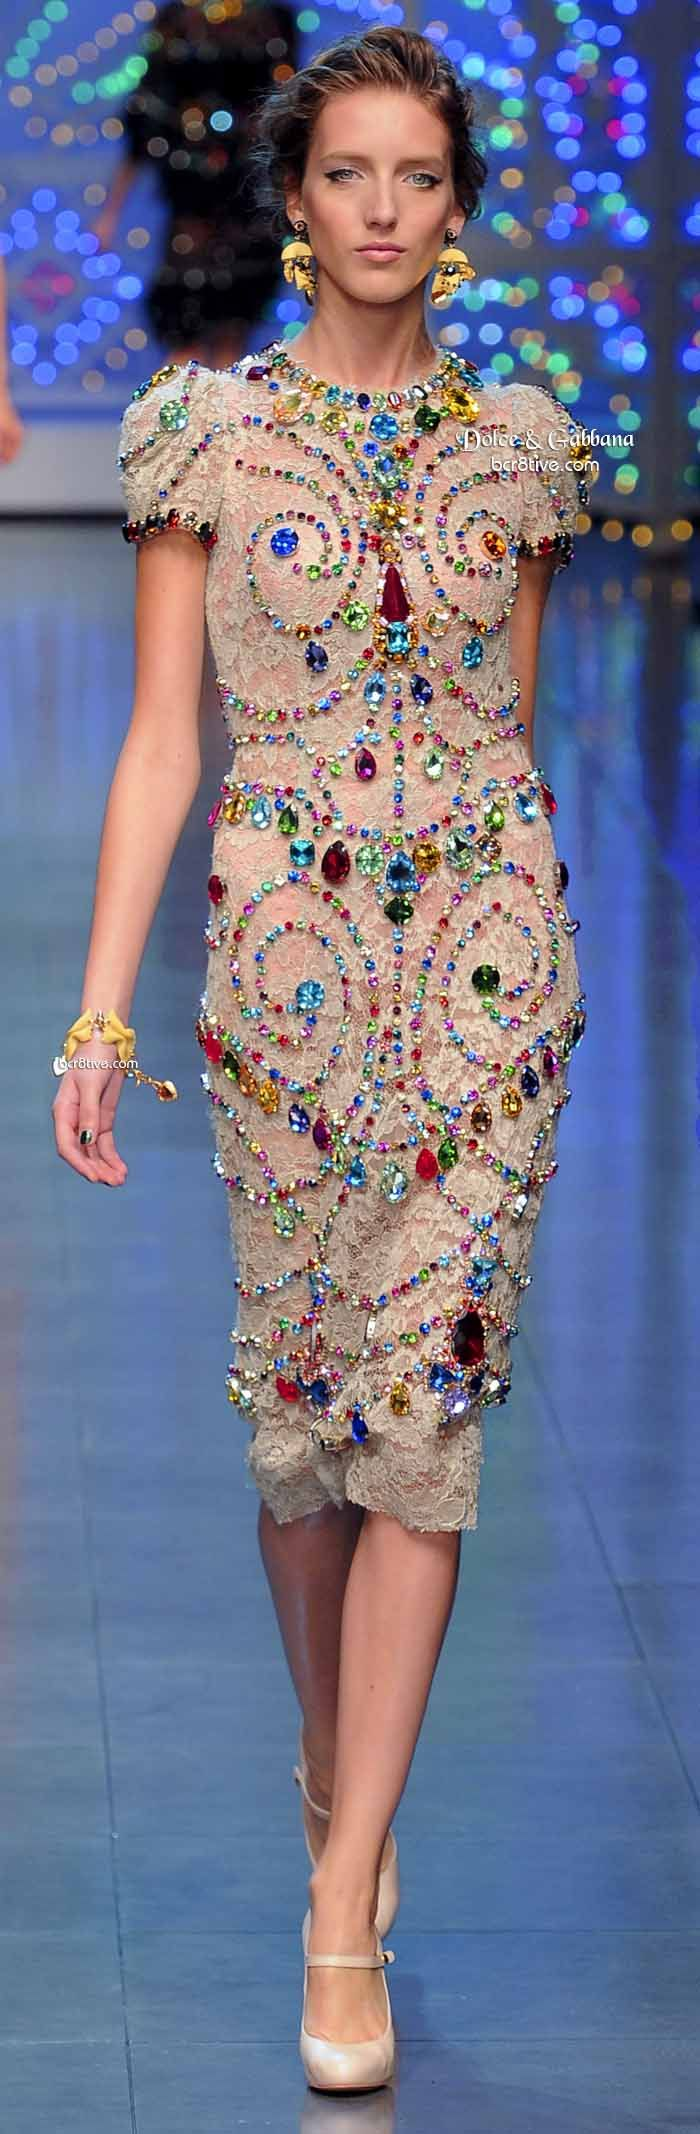 Dolce & Gabbana Milan Week December 2013 BEAUTIFUL I'd love but ...... I don't have enough $$$$$